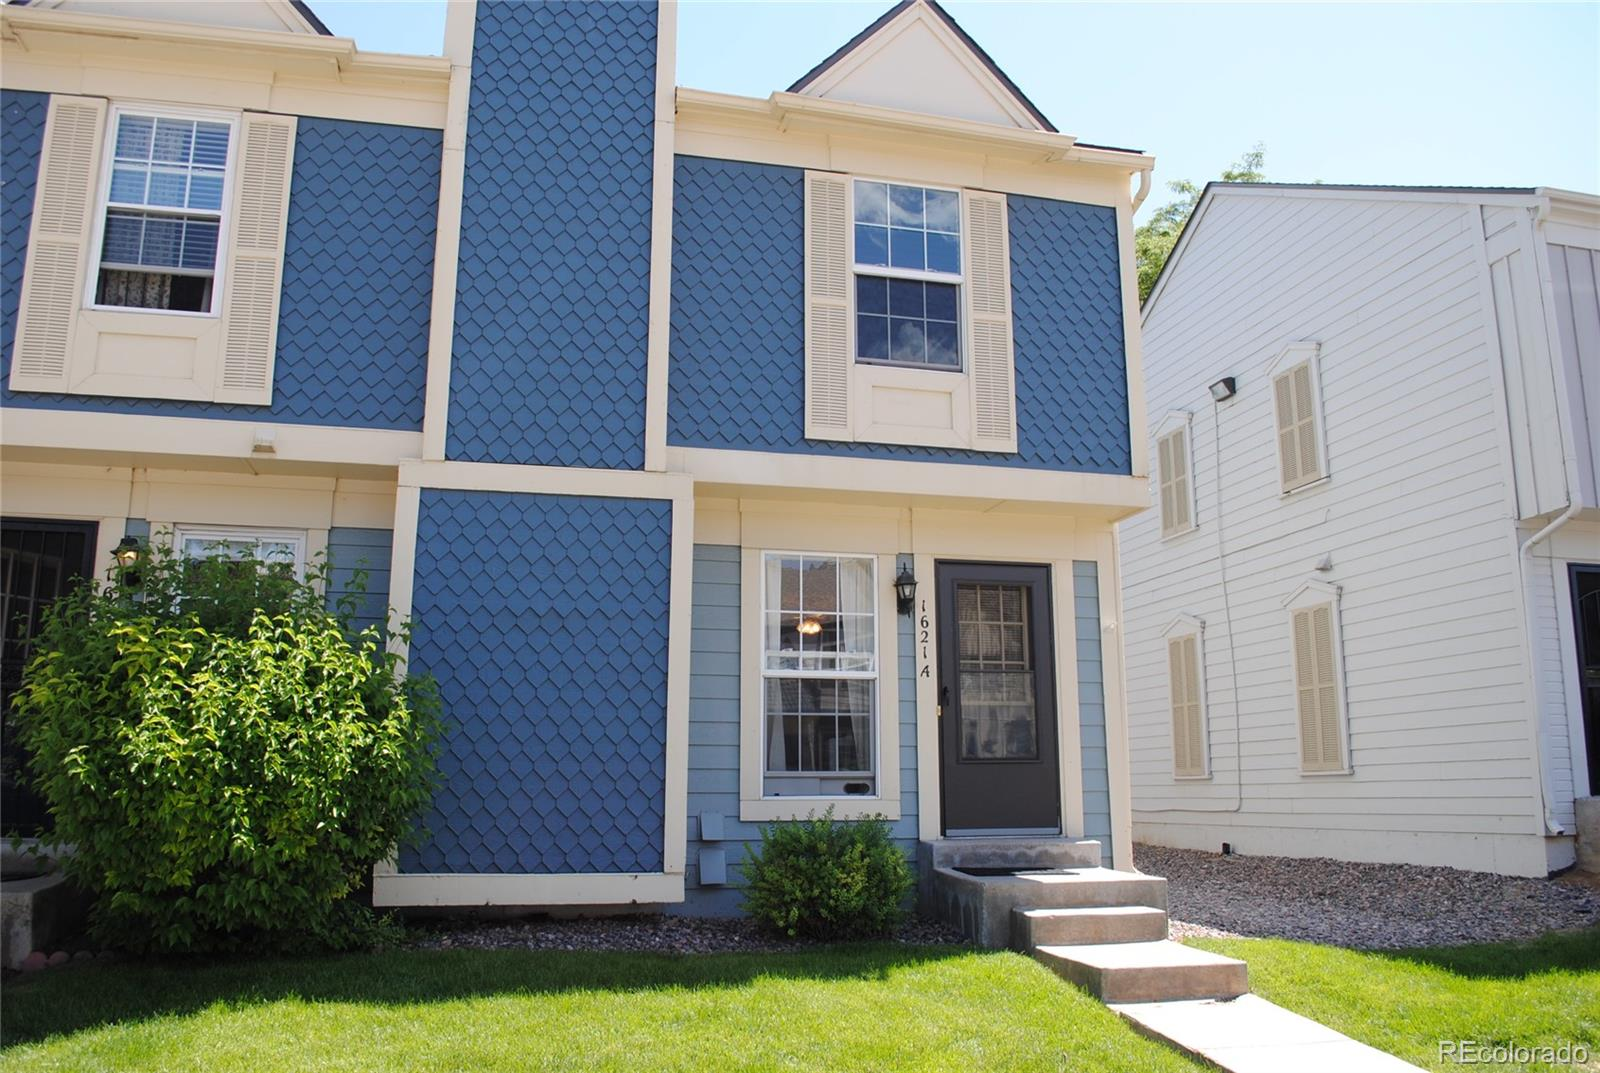 Desirable End Unit Townhome* 2 Bedrooms, 1 Bathroom* Fenced Back patio with gate leading to the greenbelt*Large living room with wood burning fireplace* Nice Dining area open to the kitchen and living rooms*All Kitchen appliances included as well as washer and dryer*Large Master Bedroom with privacy door to the bathroom*Huge closet*Upstairs Laundry*Reserved parking space with lots of Visitor parking*Under stair storage, Exterior storage closet plus negotiable shed*Close to Park, Restaurants and shopping*